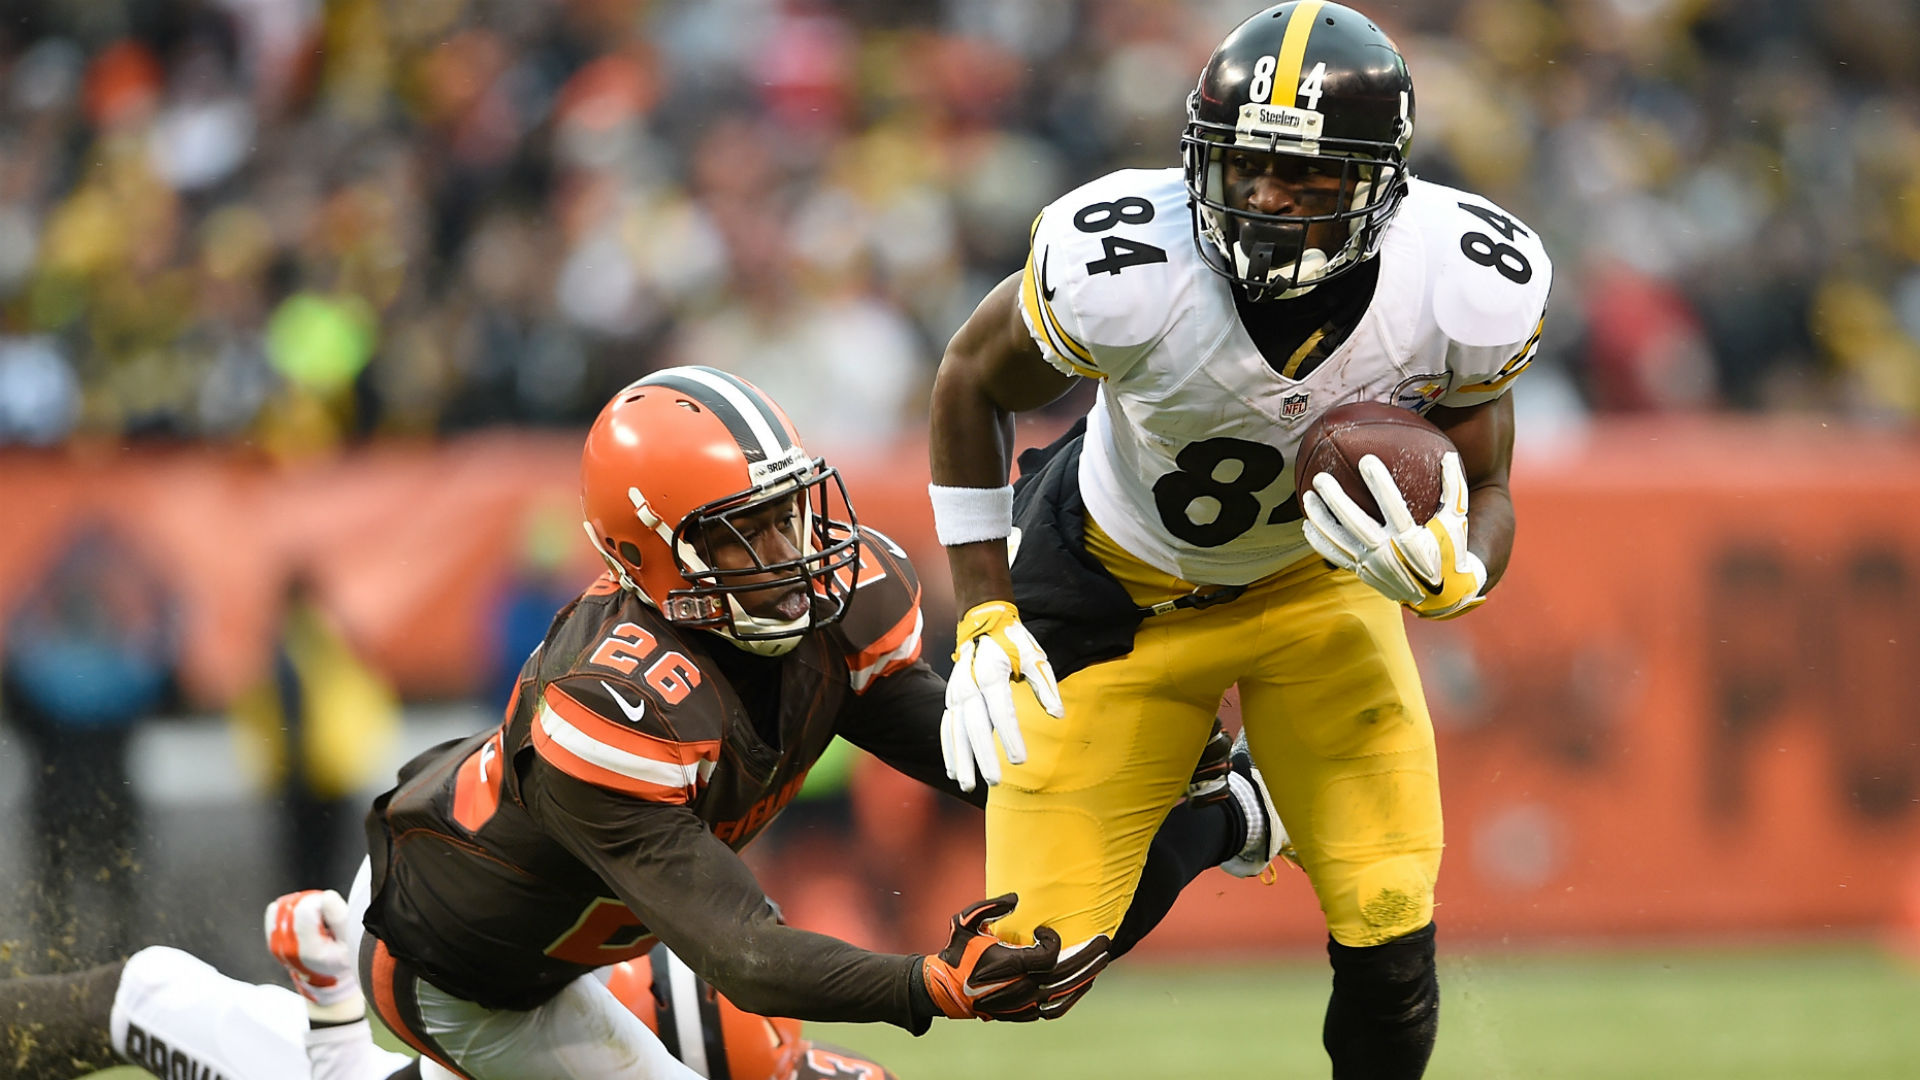 Antonio Brown est le n°1 au post de WR avant la saison 2016 (Getty)